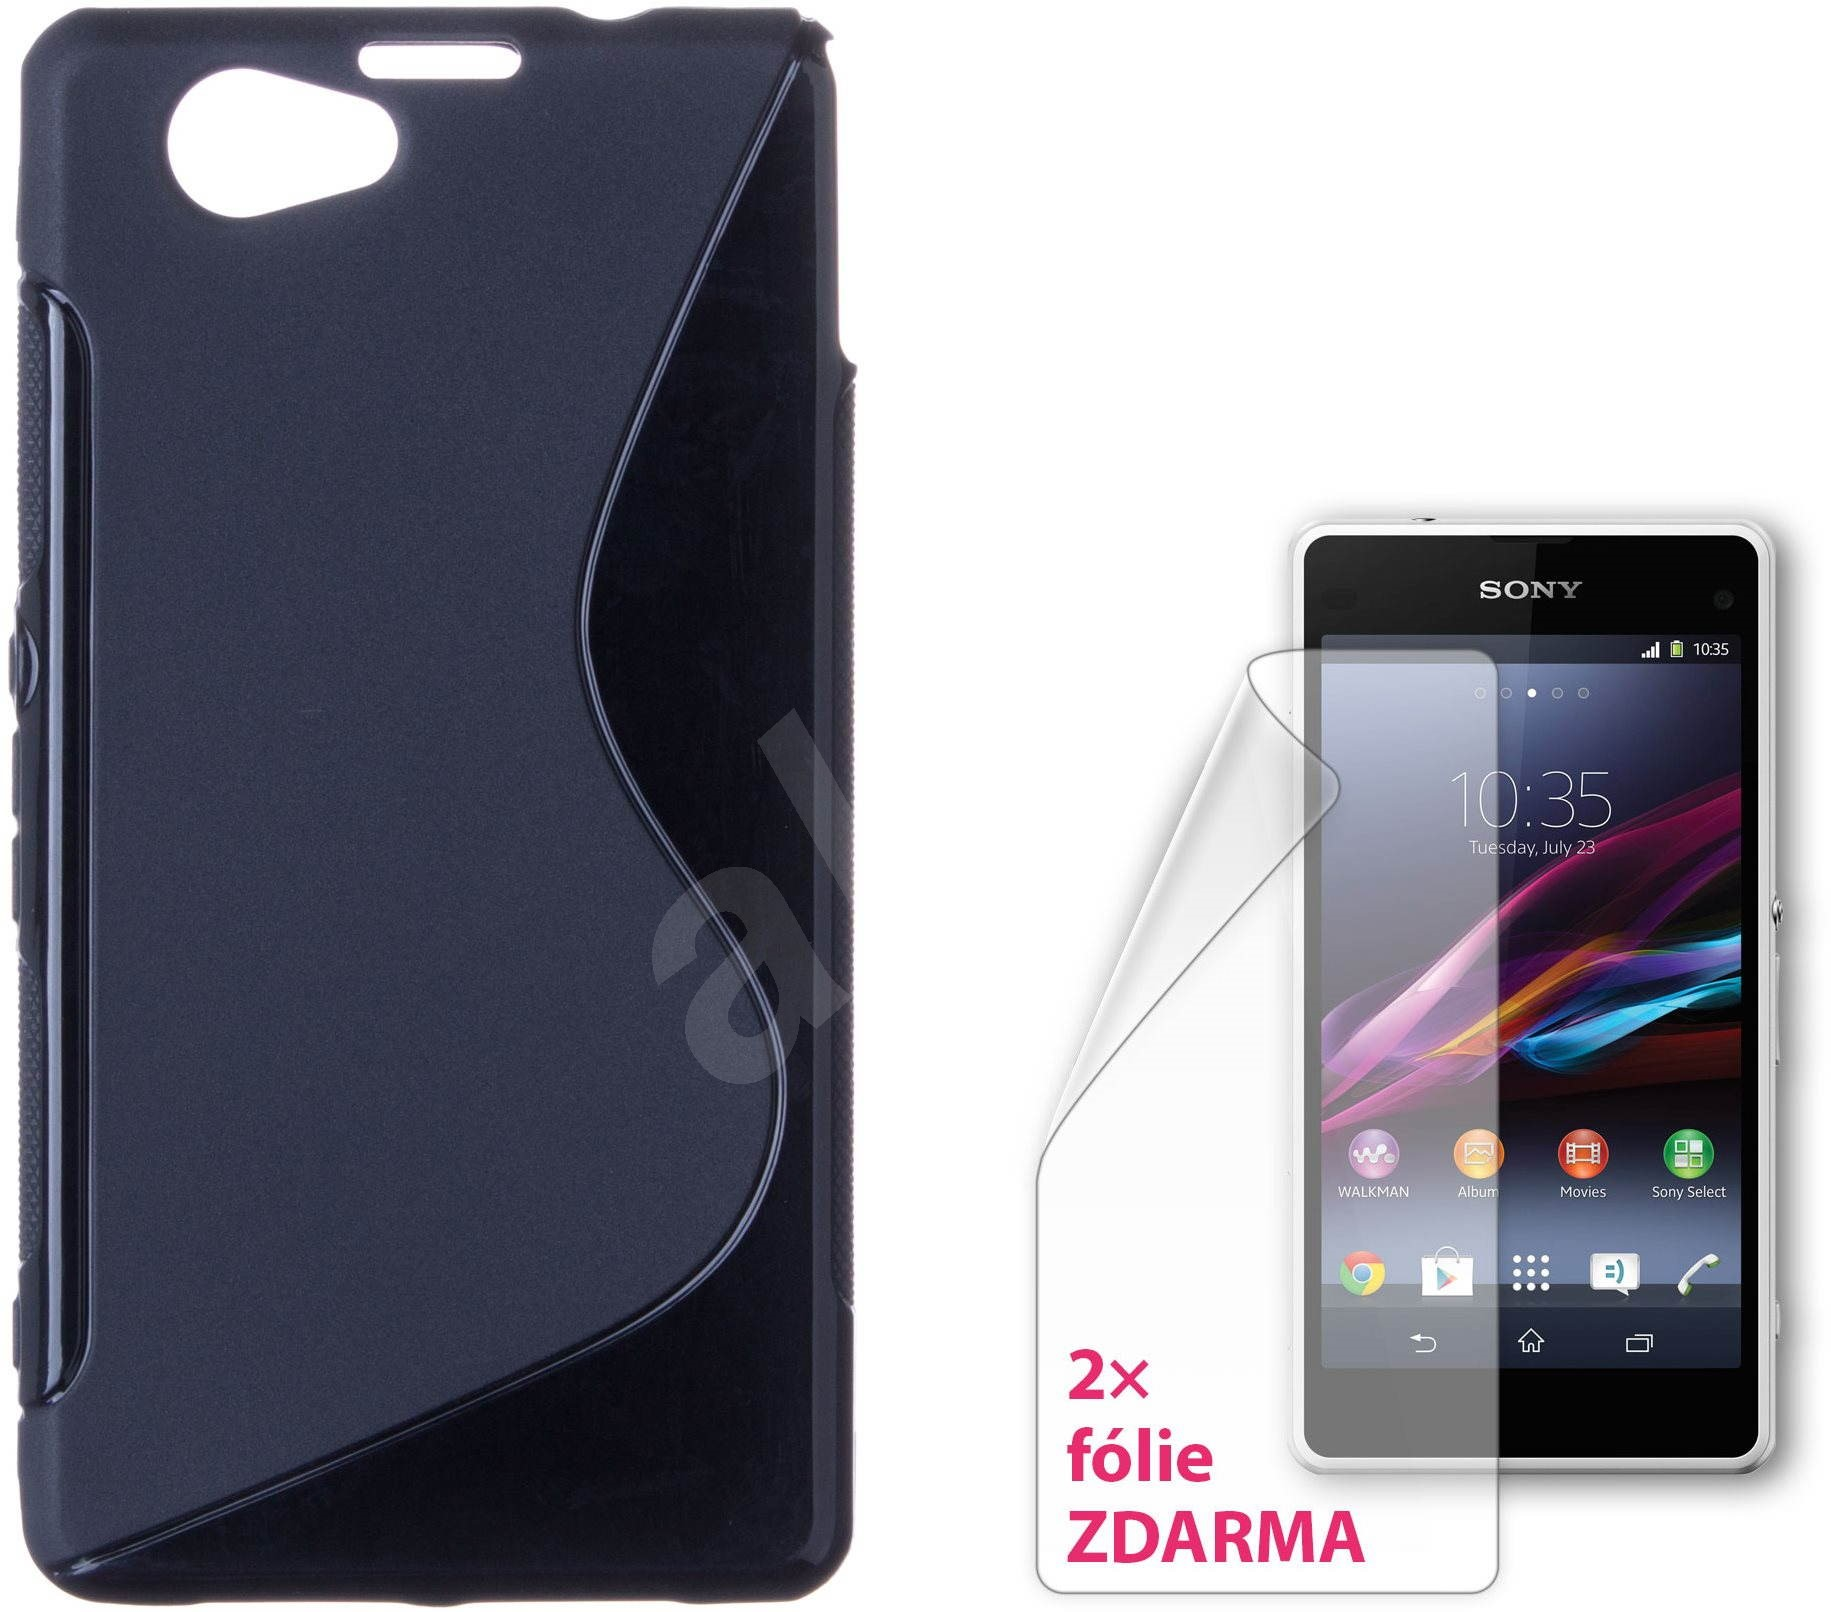 connect mit it cover sony xperia z1 kompakt schwarz. Black Bedroom Furniture Sets. Home Design Ideas